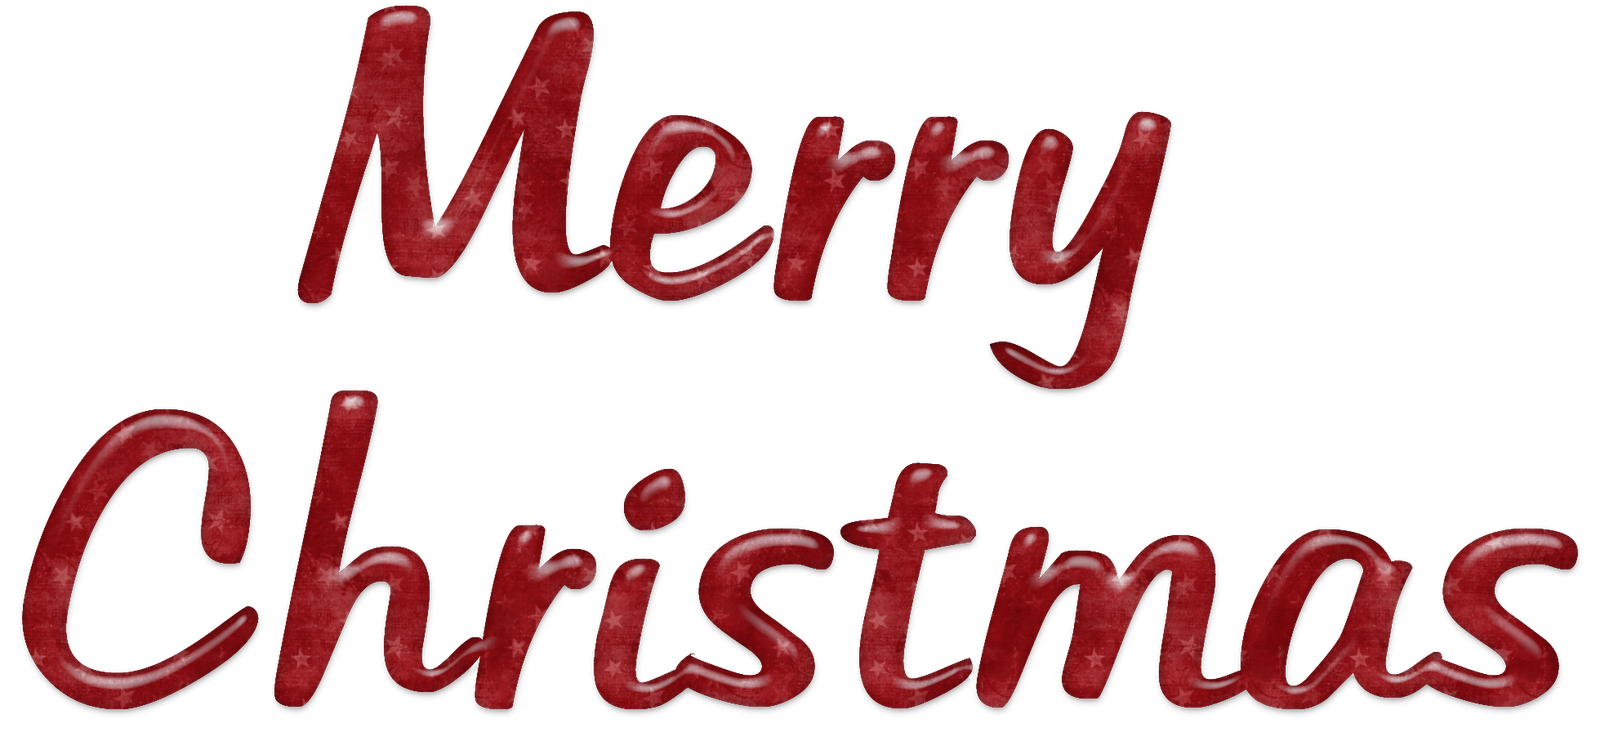 Merry christmas words clipart svg transparent merry christmas template word christmas words clipart 57 pertaining ... svg transparent